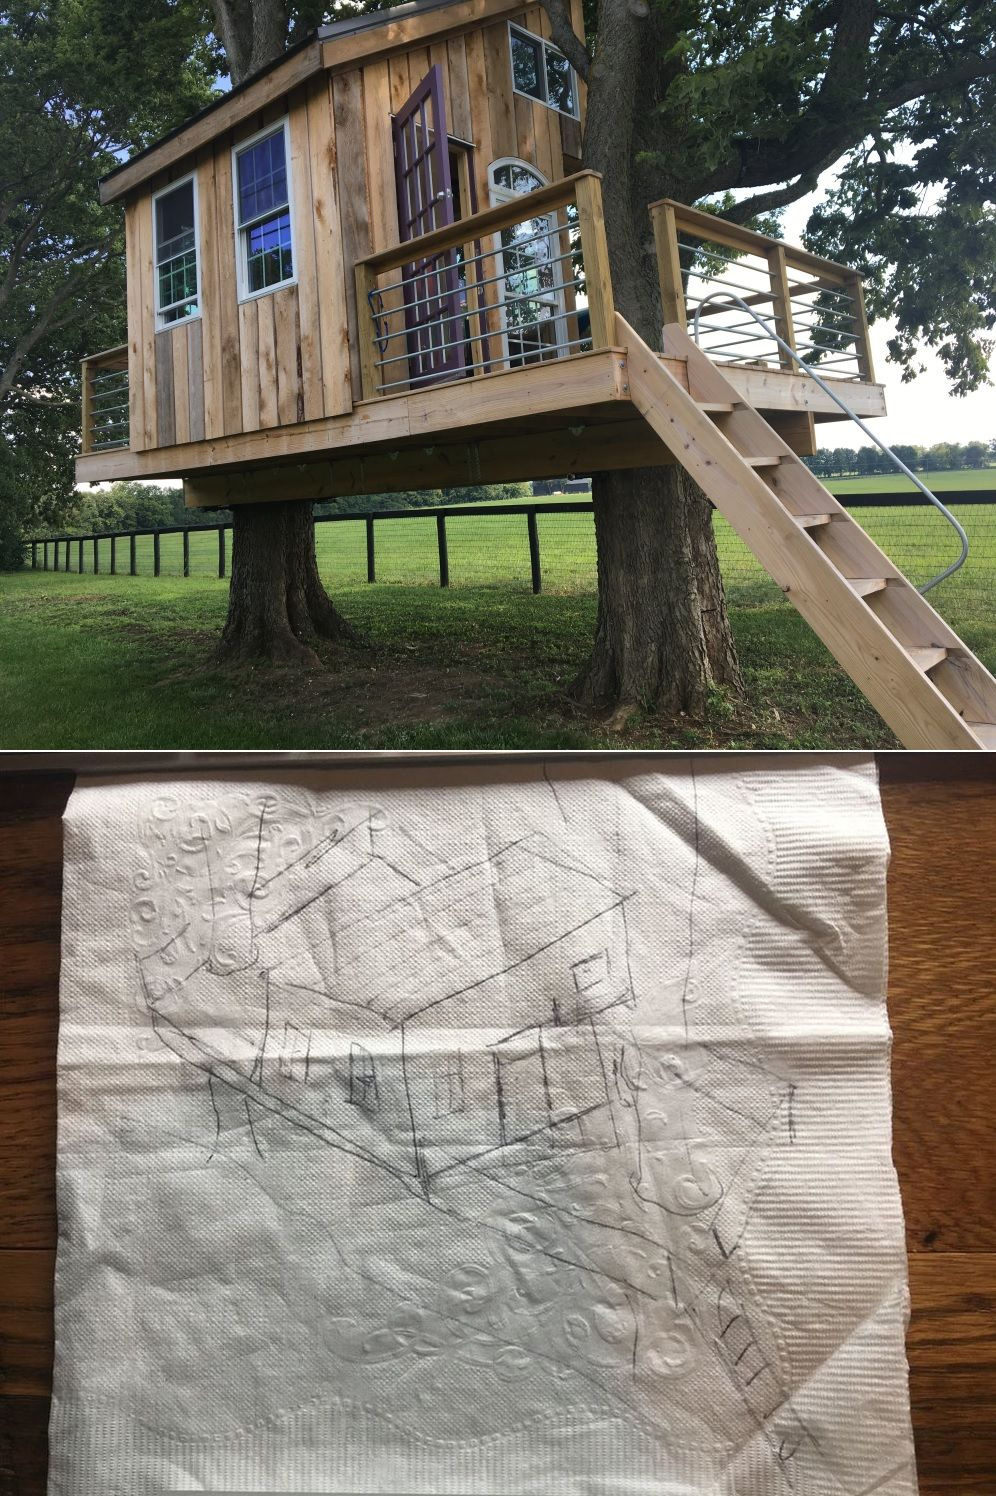 Tree House Building Plans Unique 20 Simple Tree House Plans and Design to Take Up This Spring